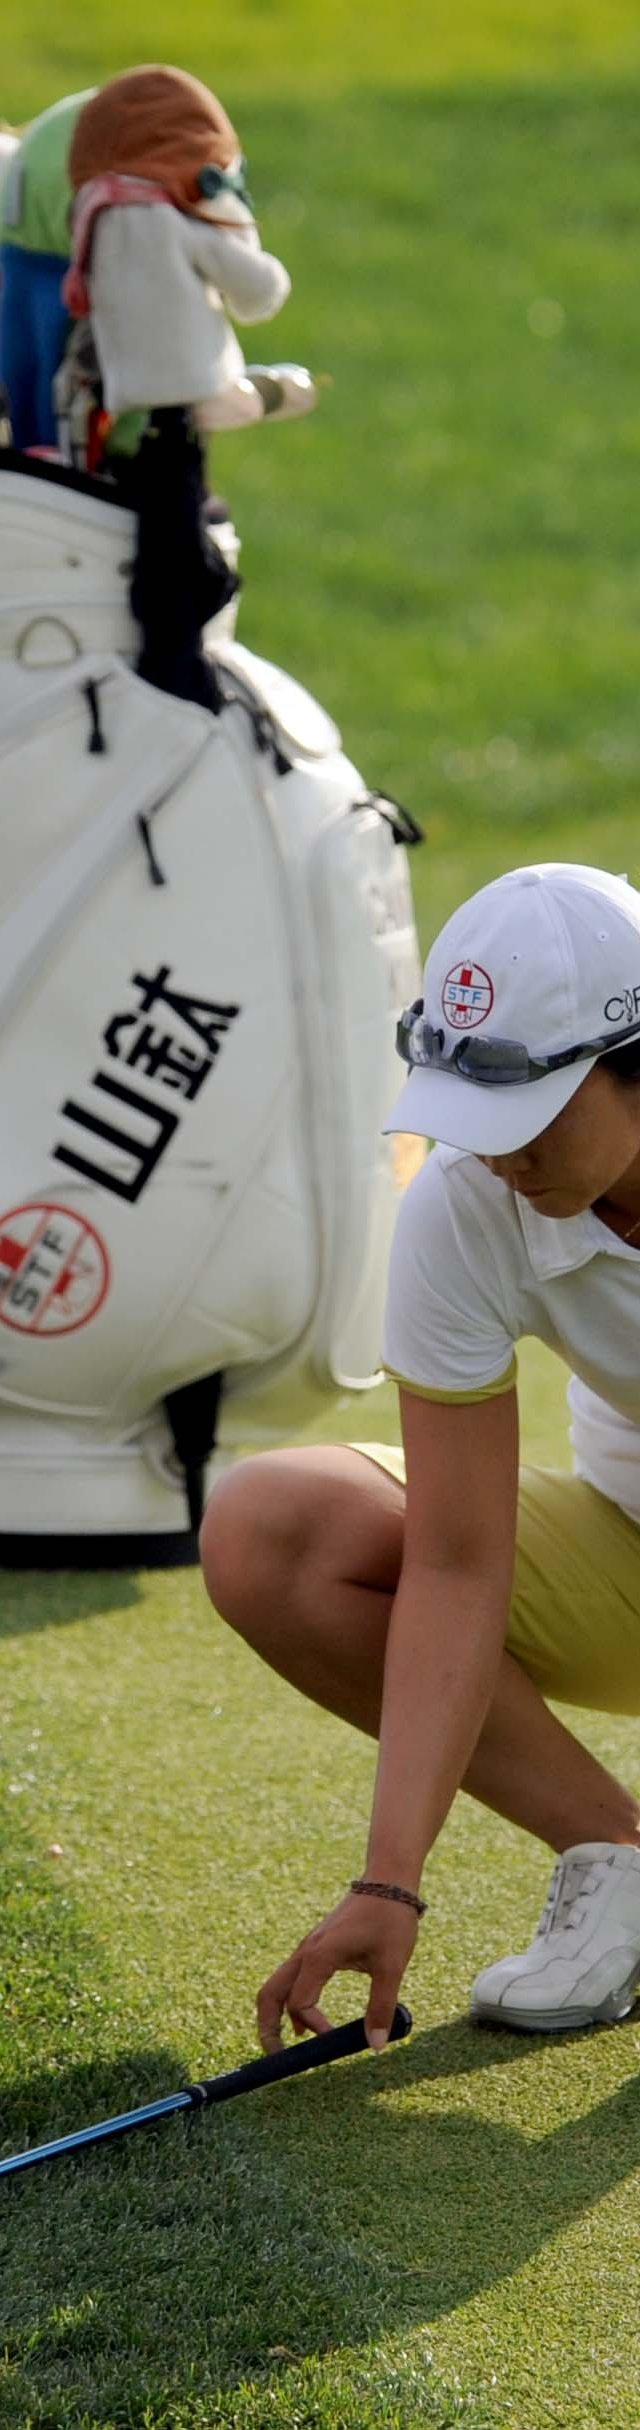 Candie Kung and her caddie Jeff King measure for relief under a special rule for the step-cut rough during the first round of the Safeway Classic.